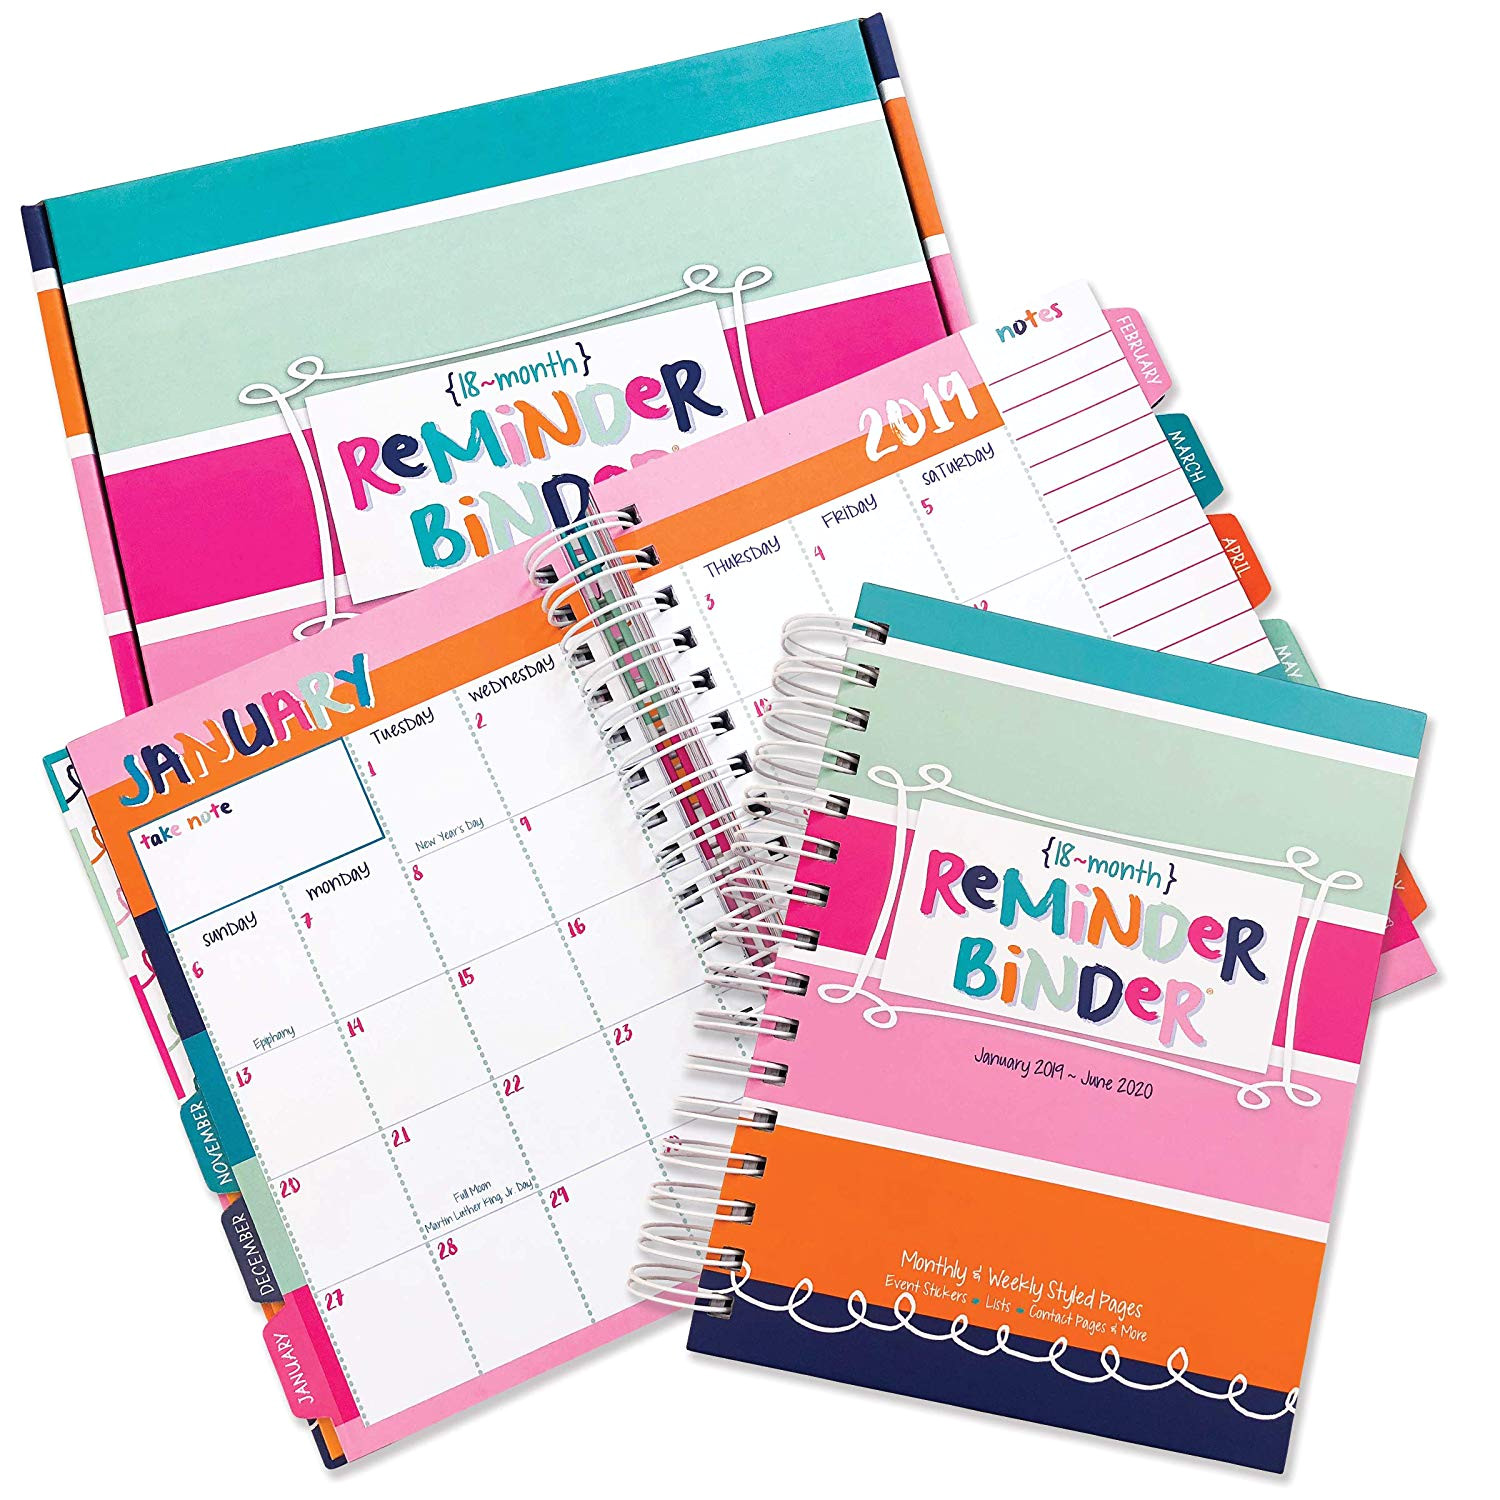 Living Well Spending Less Holiday Planner 2019 Amazon Com 2019 2020 Planner Agenda with Weekly Monthly